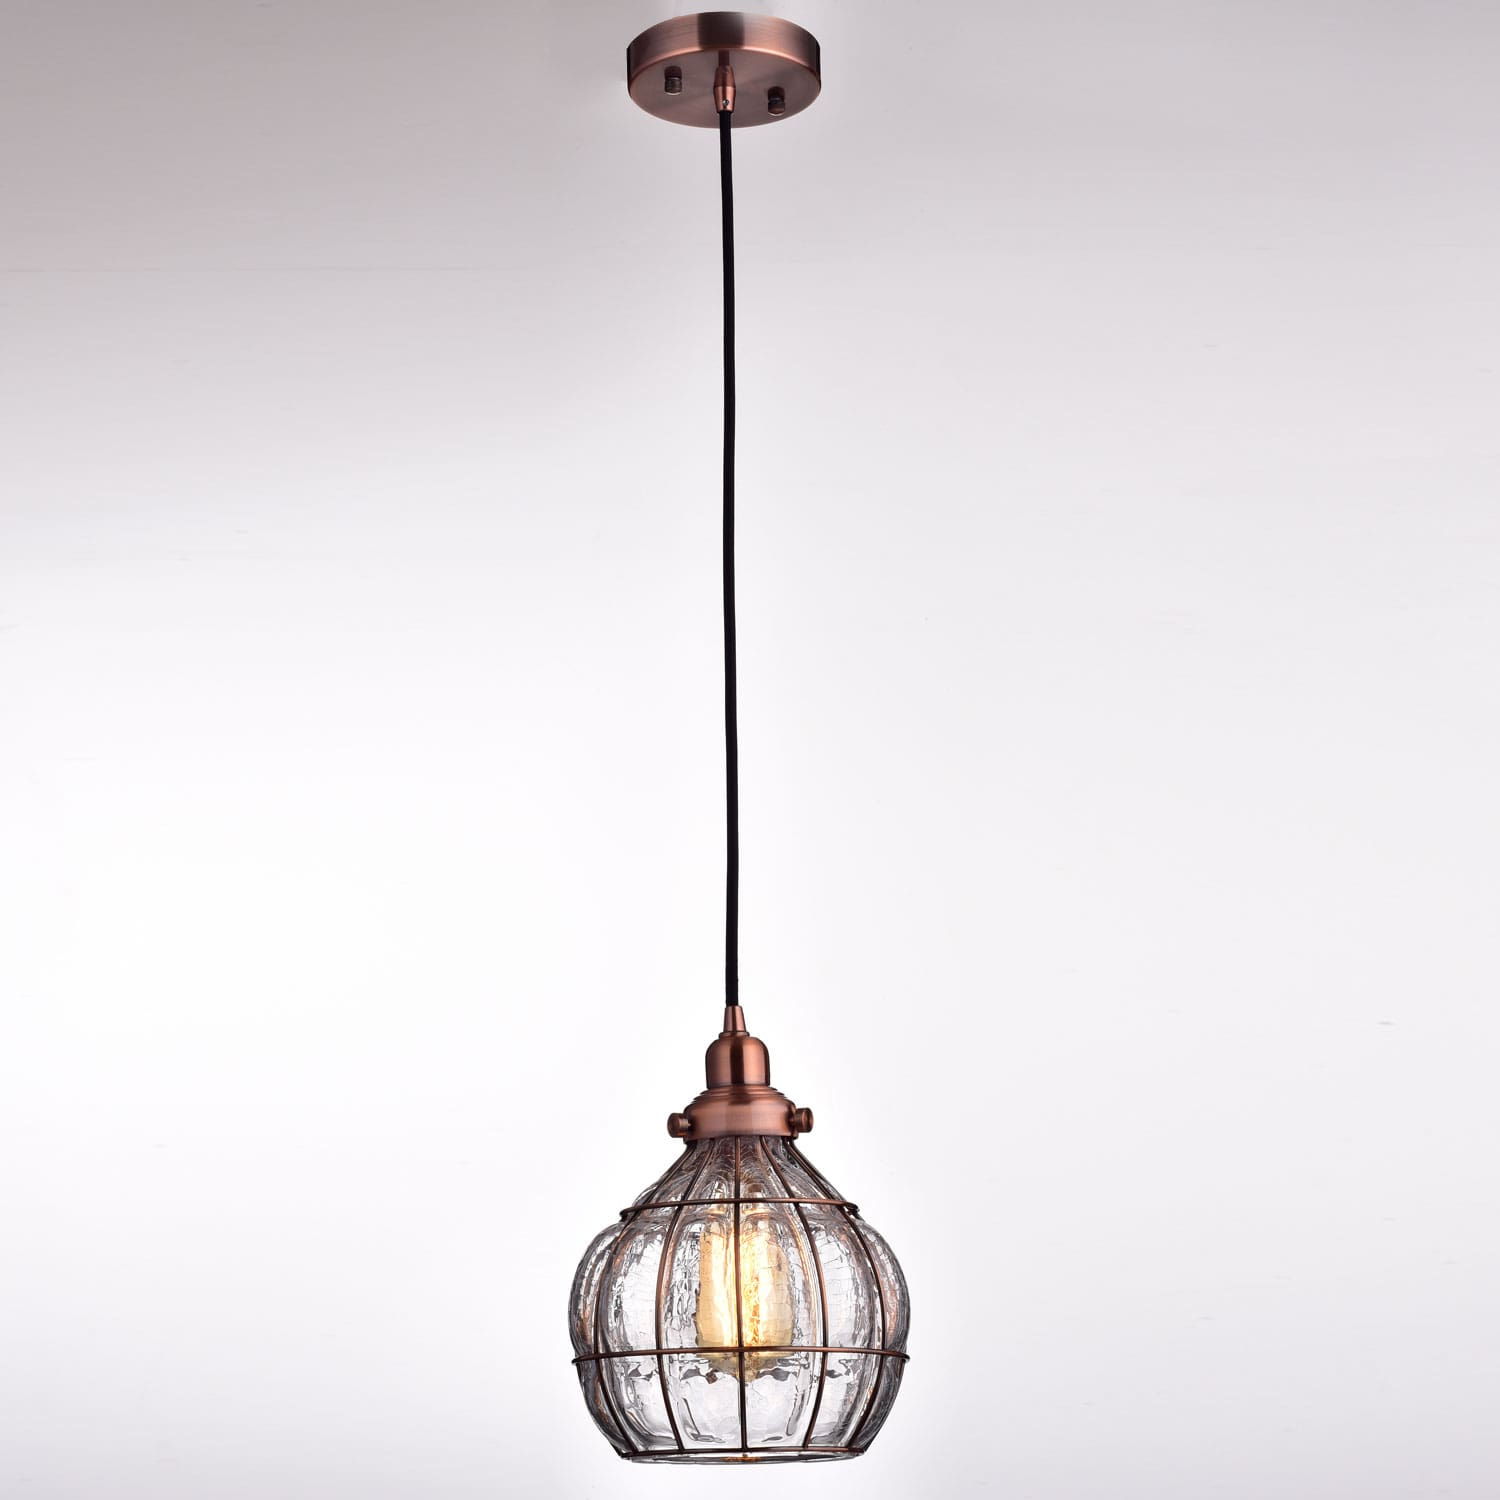 Rustic Cracked Glass Globe Pendant Lights, Red Copper Finish